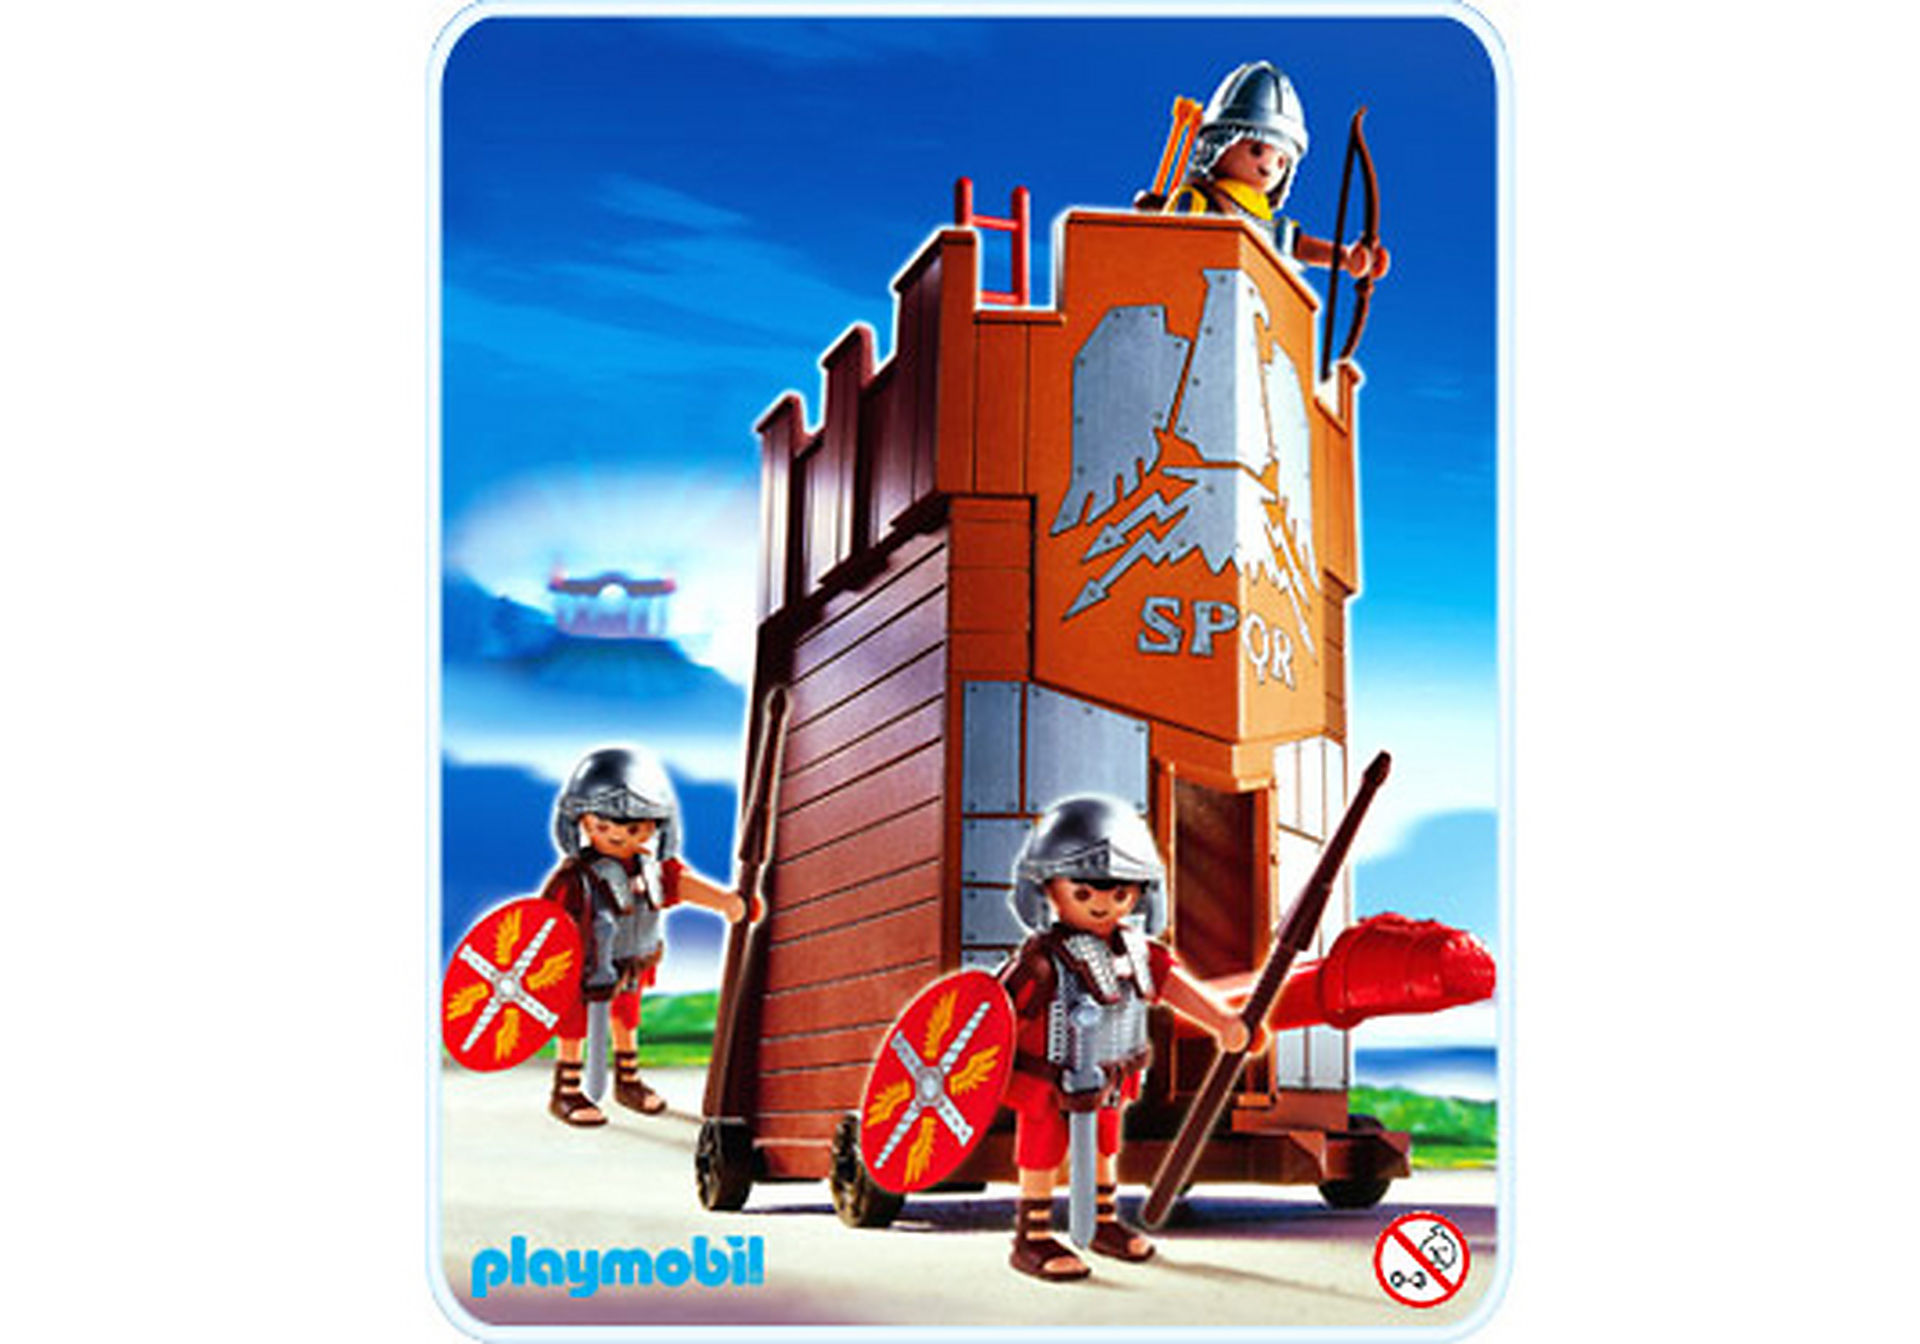 http://media.playmobil.com/i/playmobil/4275-A_product_detail/Belagerungsturm